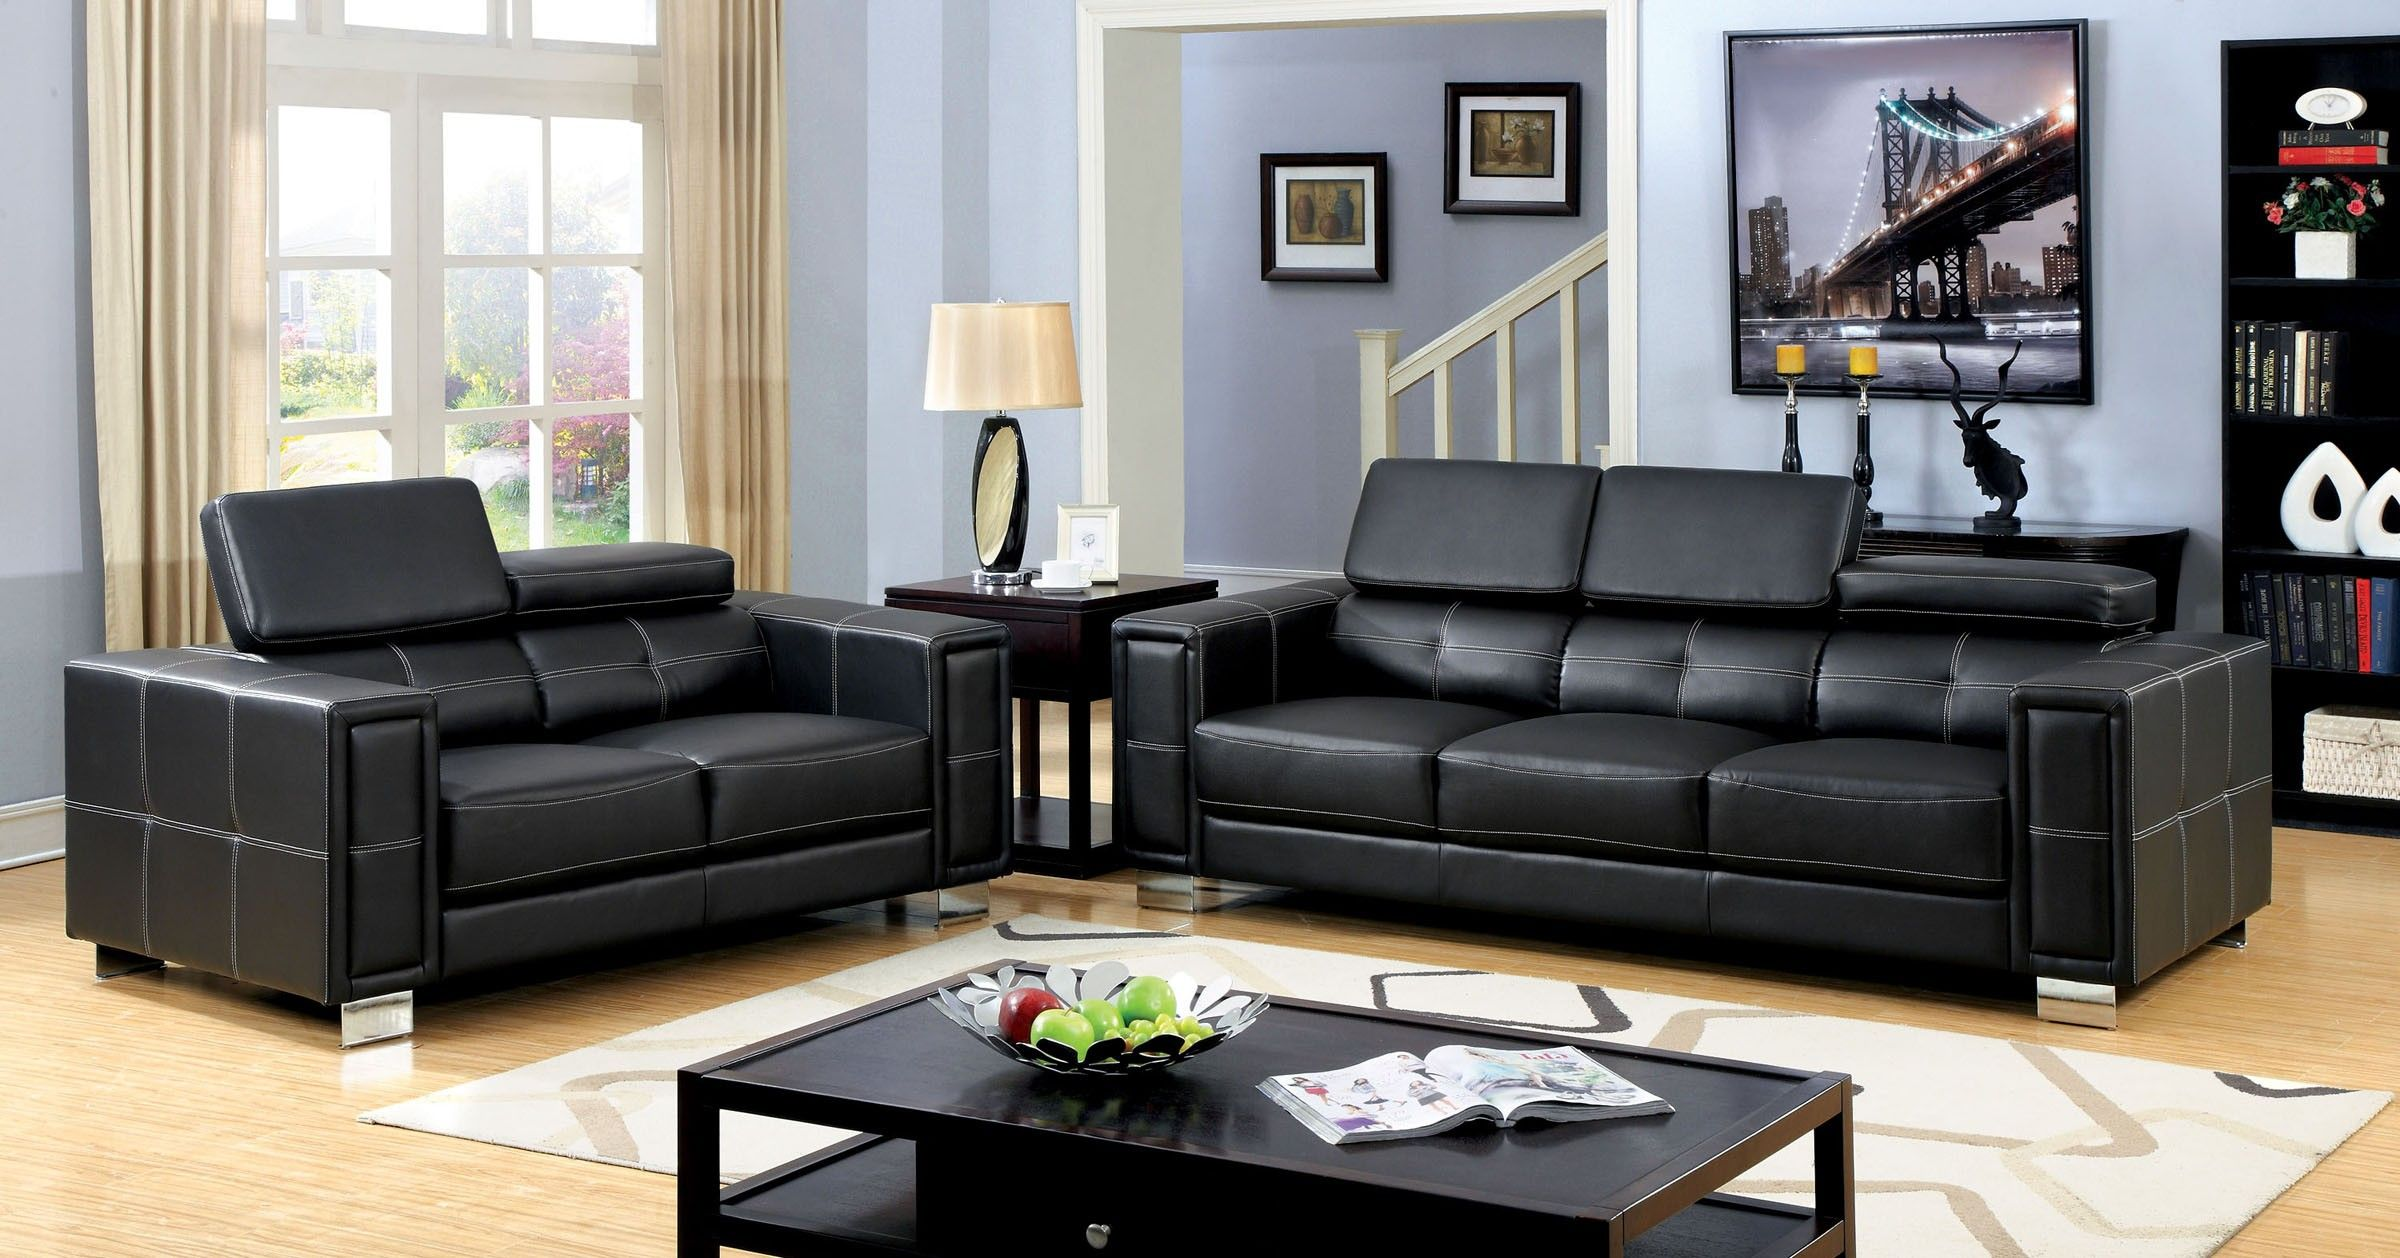 Awesome 399 Sofa Fresh 15 Room Ideas With Http